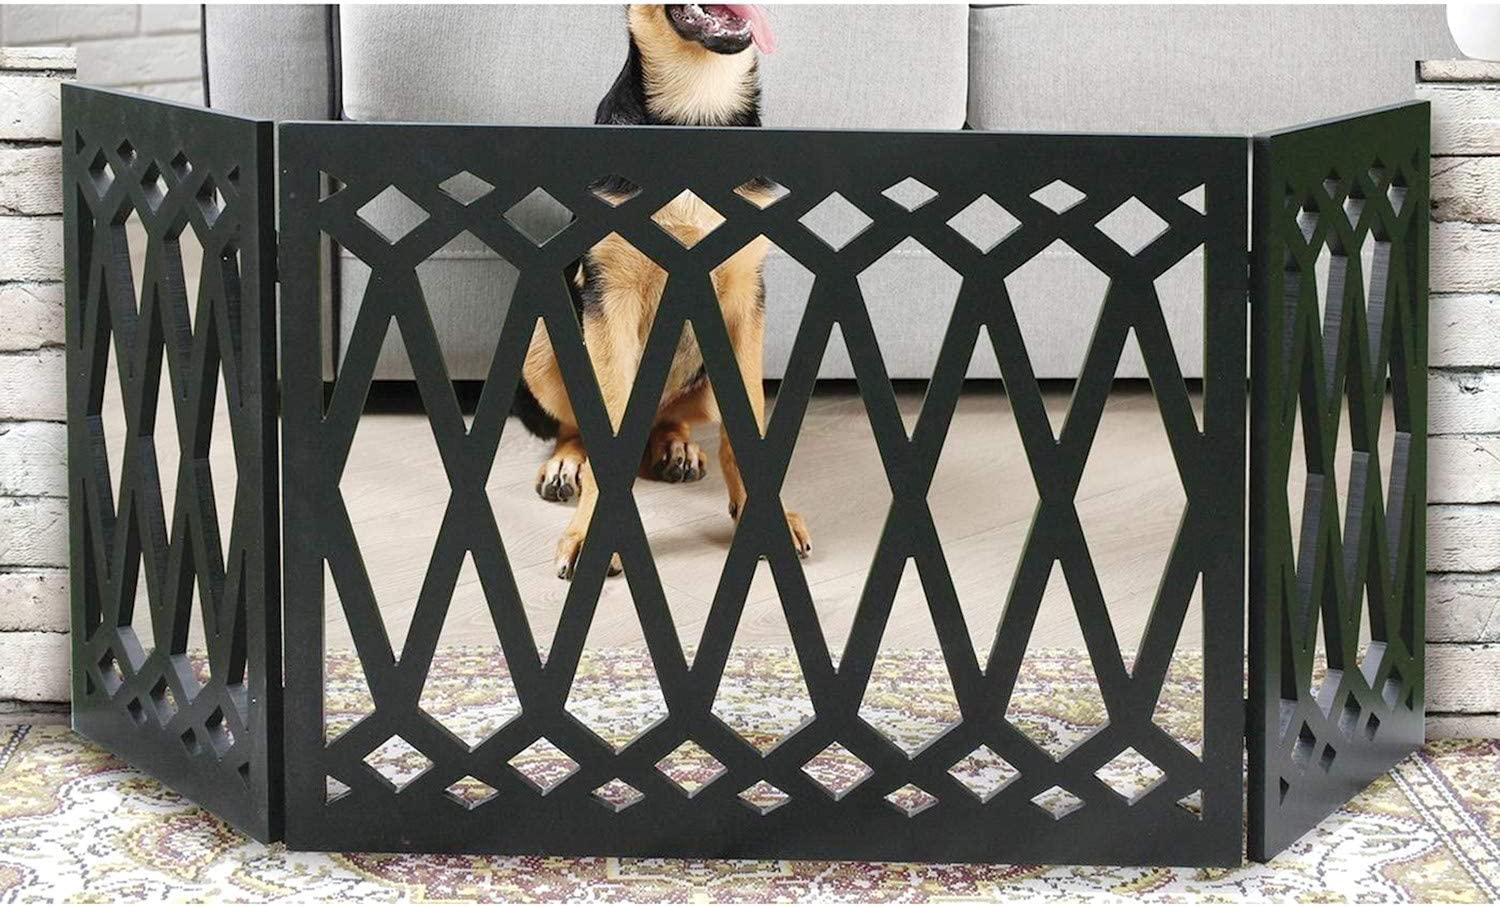 Indoor//Outdoor Pet Barrier Etna 3-Panel Diamond Design Wood Pet Gate Decorative Black Tri Fold Dog Fence for Doorways 24-48 Inches Wide x 19 Inches Tall Stairs